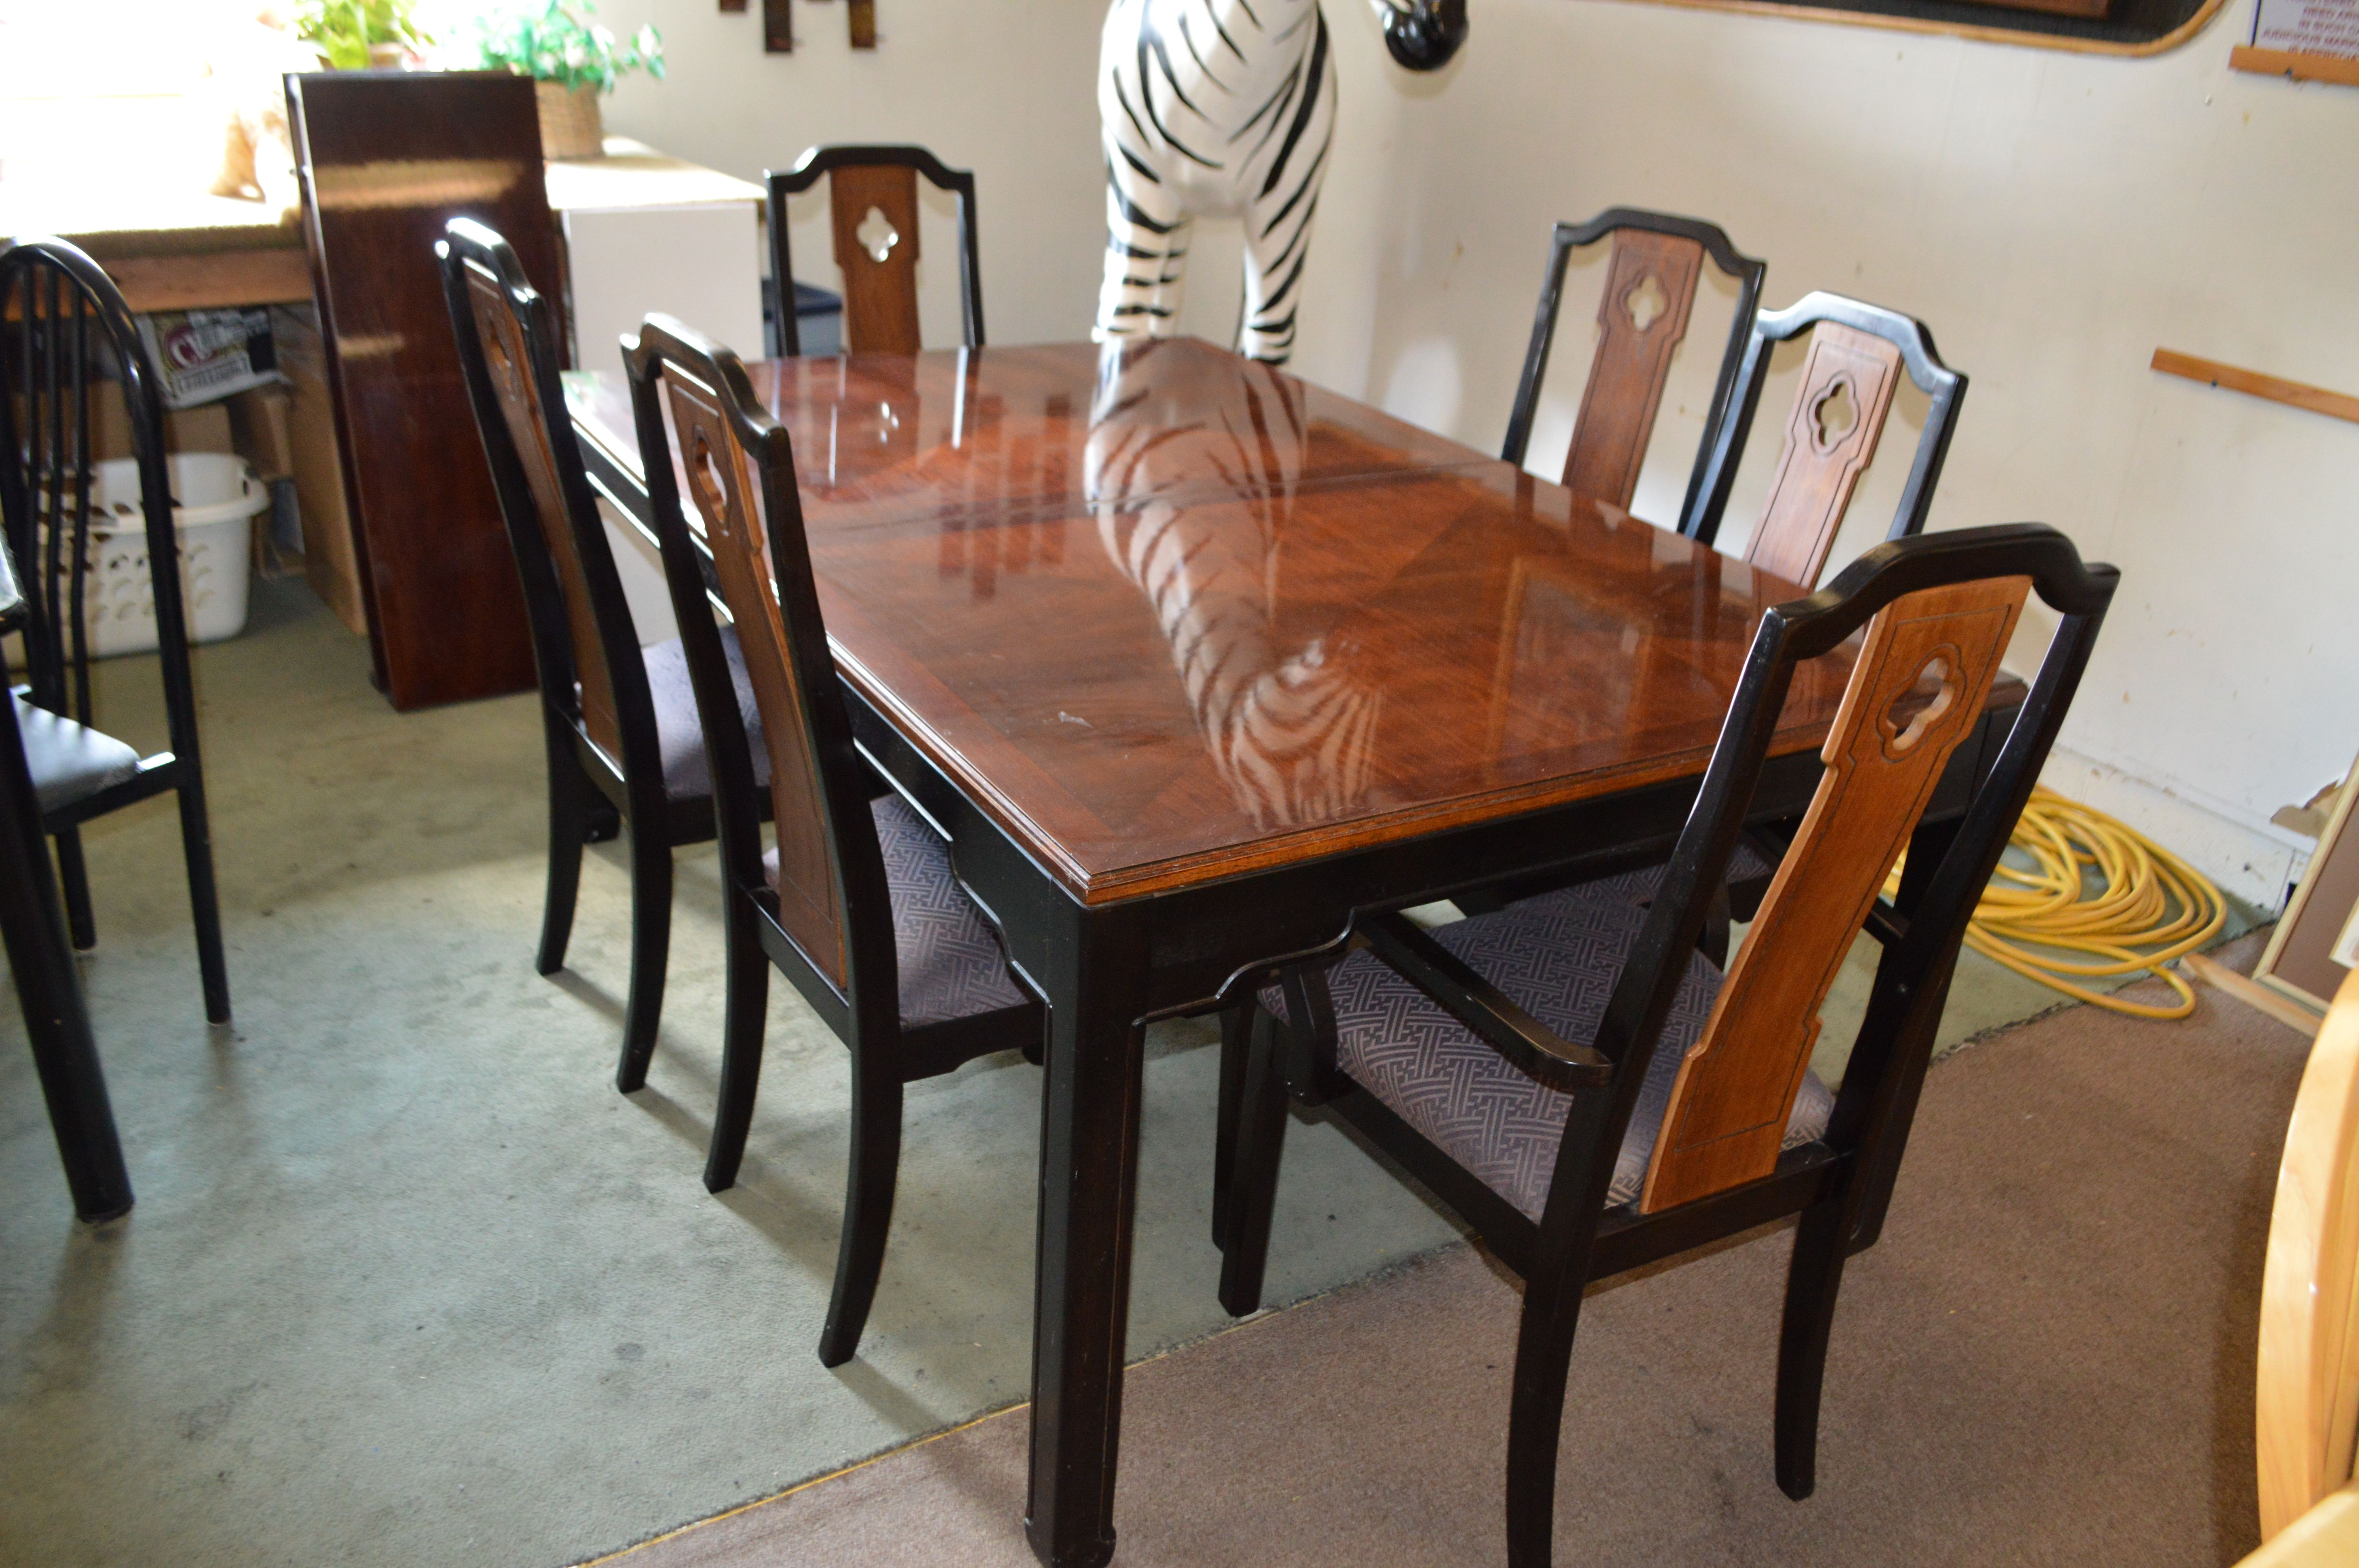 Thomasville Asian Style Dining Table Chairs In 2020 Dining Table Chairs Dining Chairs Dining Table